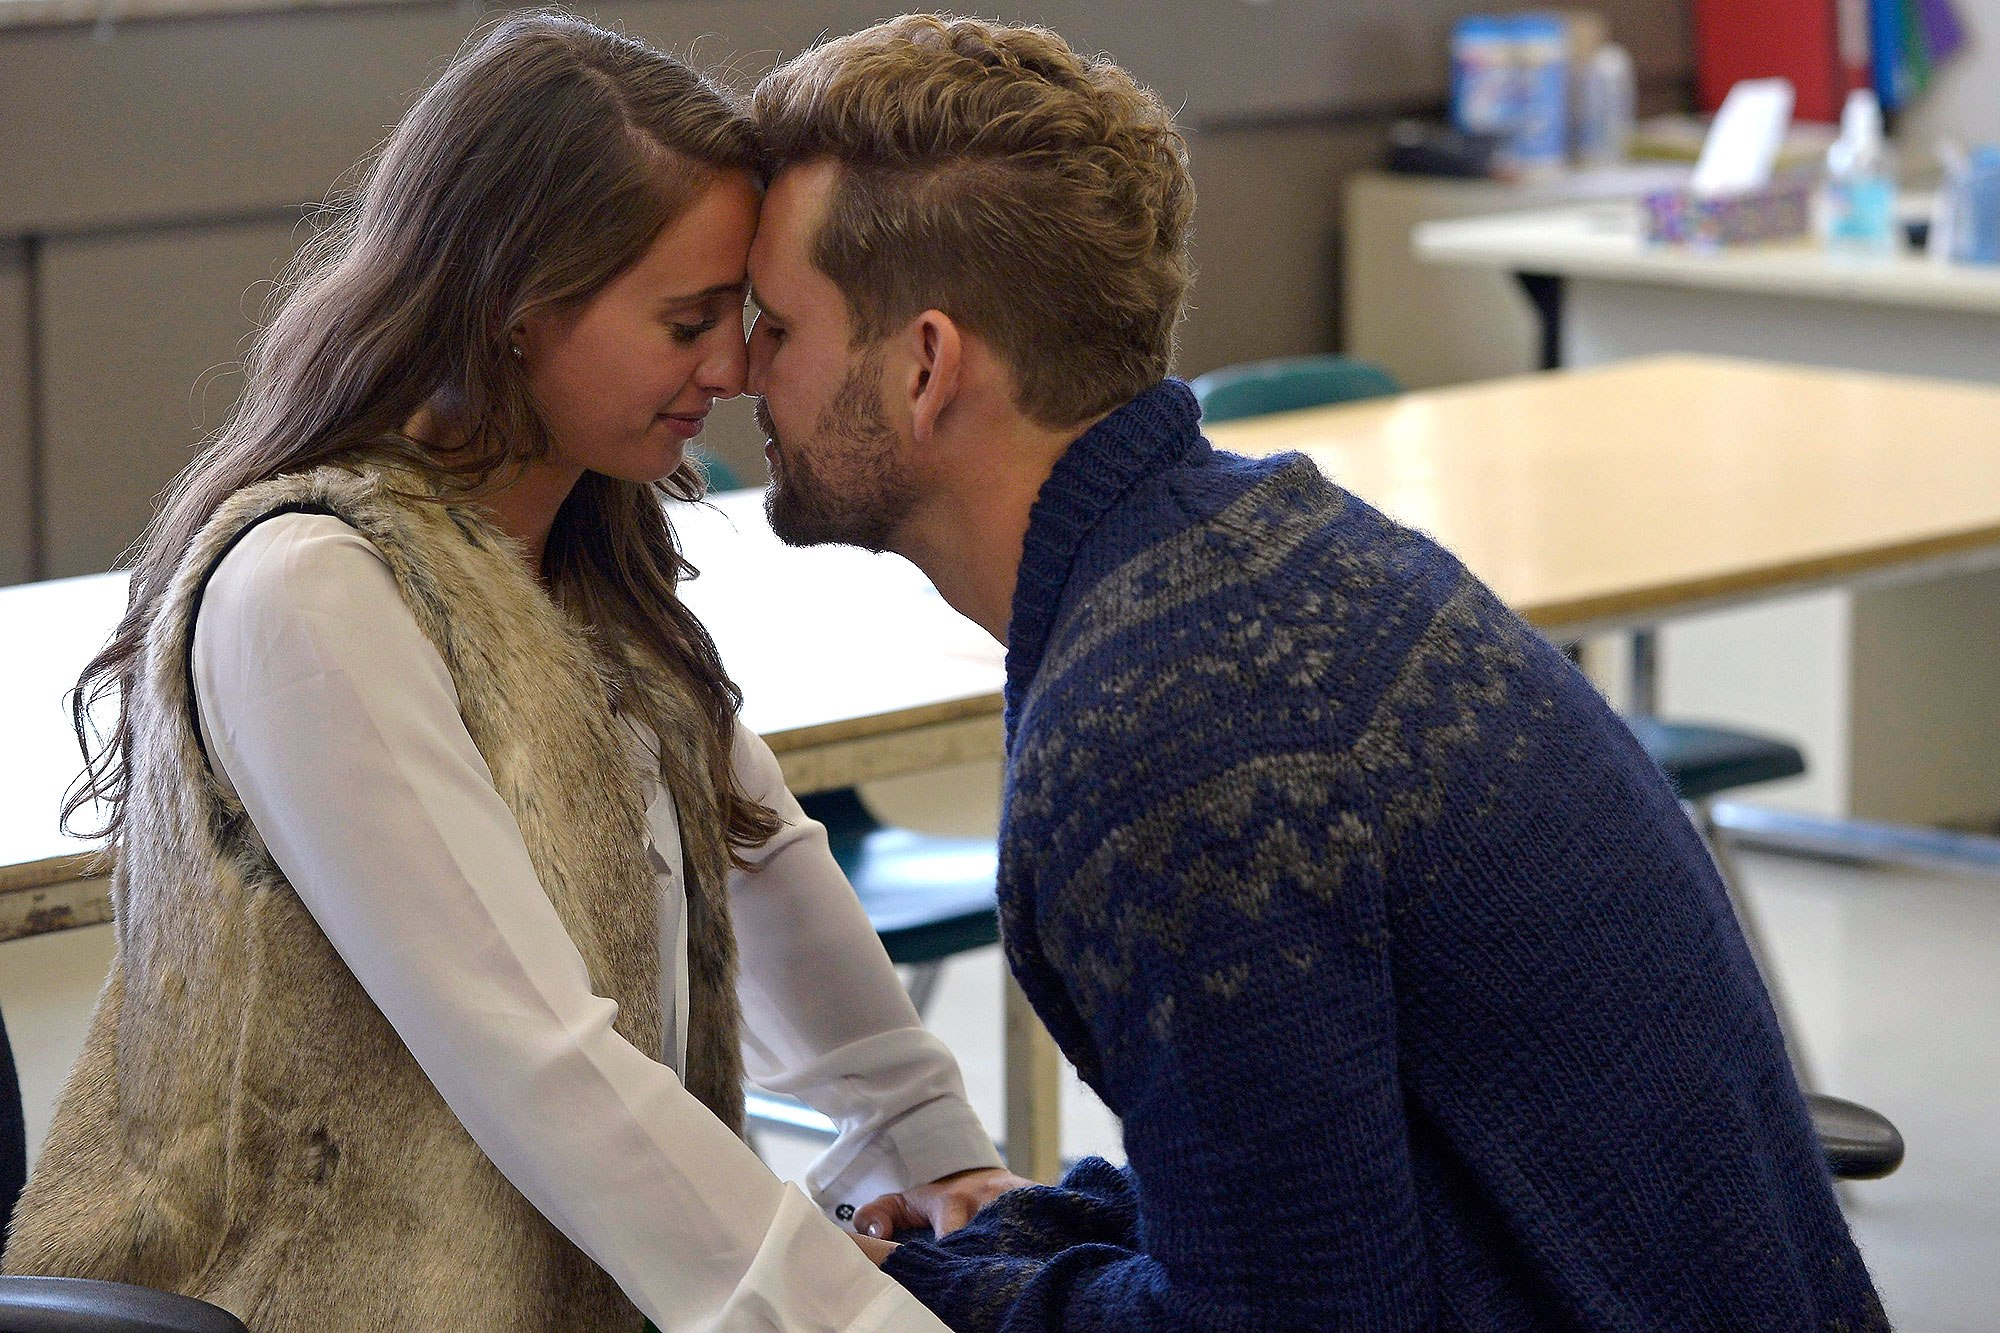 'The Bachelor' Nick Viall gets some hometown dates swamp loving 2017 images